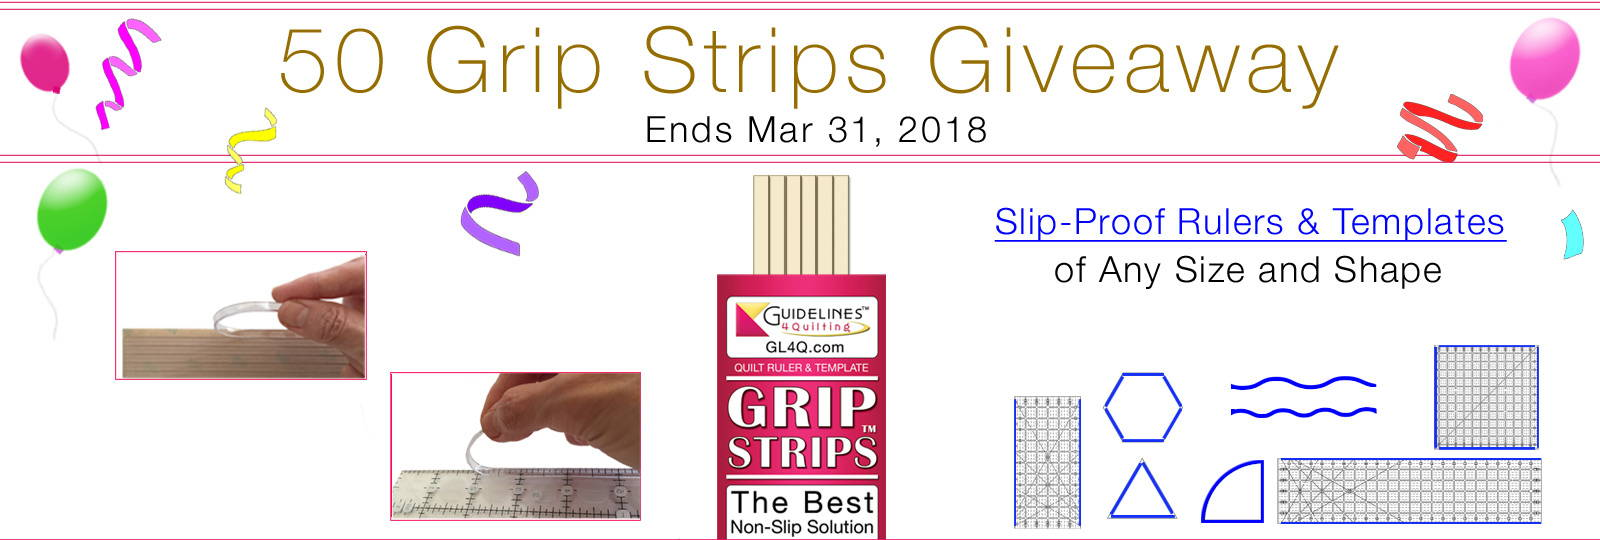 Enter Our Grip Strips Giveaway by March 31, 2018 for a chance to be one of 50 winners! - Guidelines4Quilting